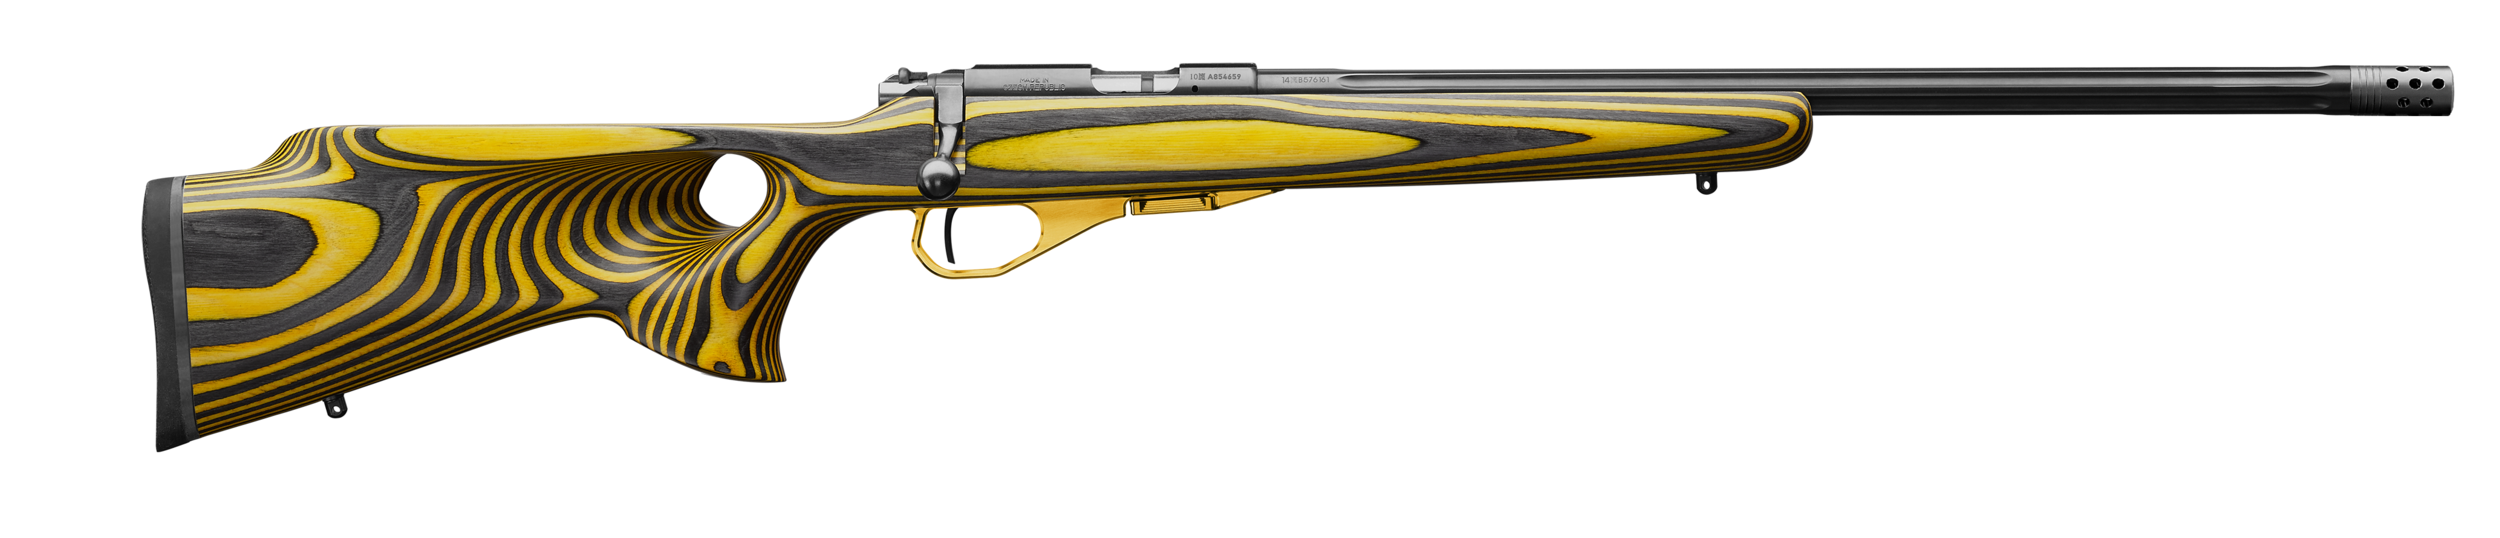 cz_455_thumbhole_yellow_right